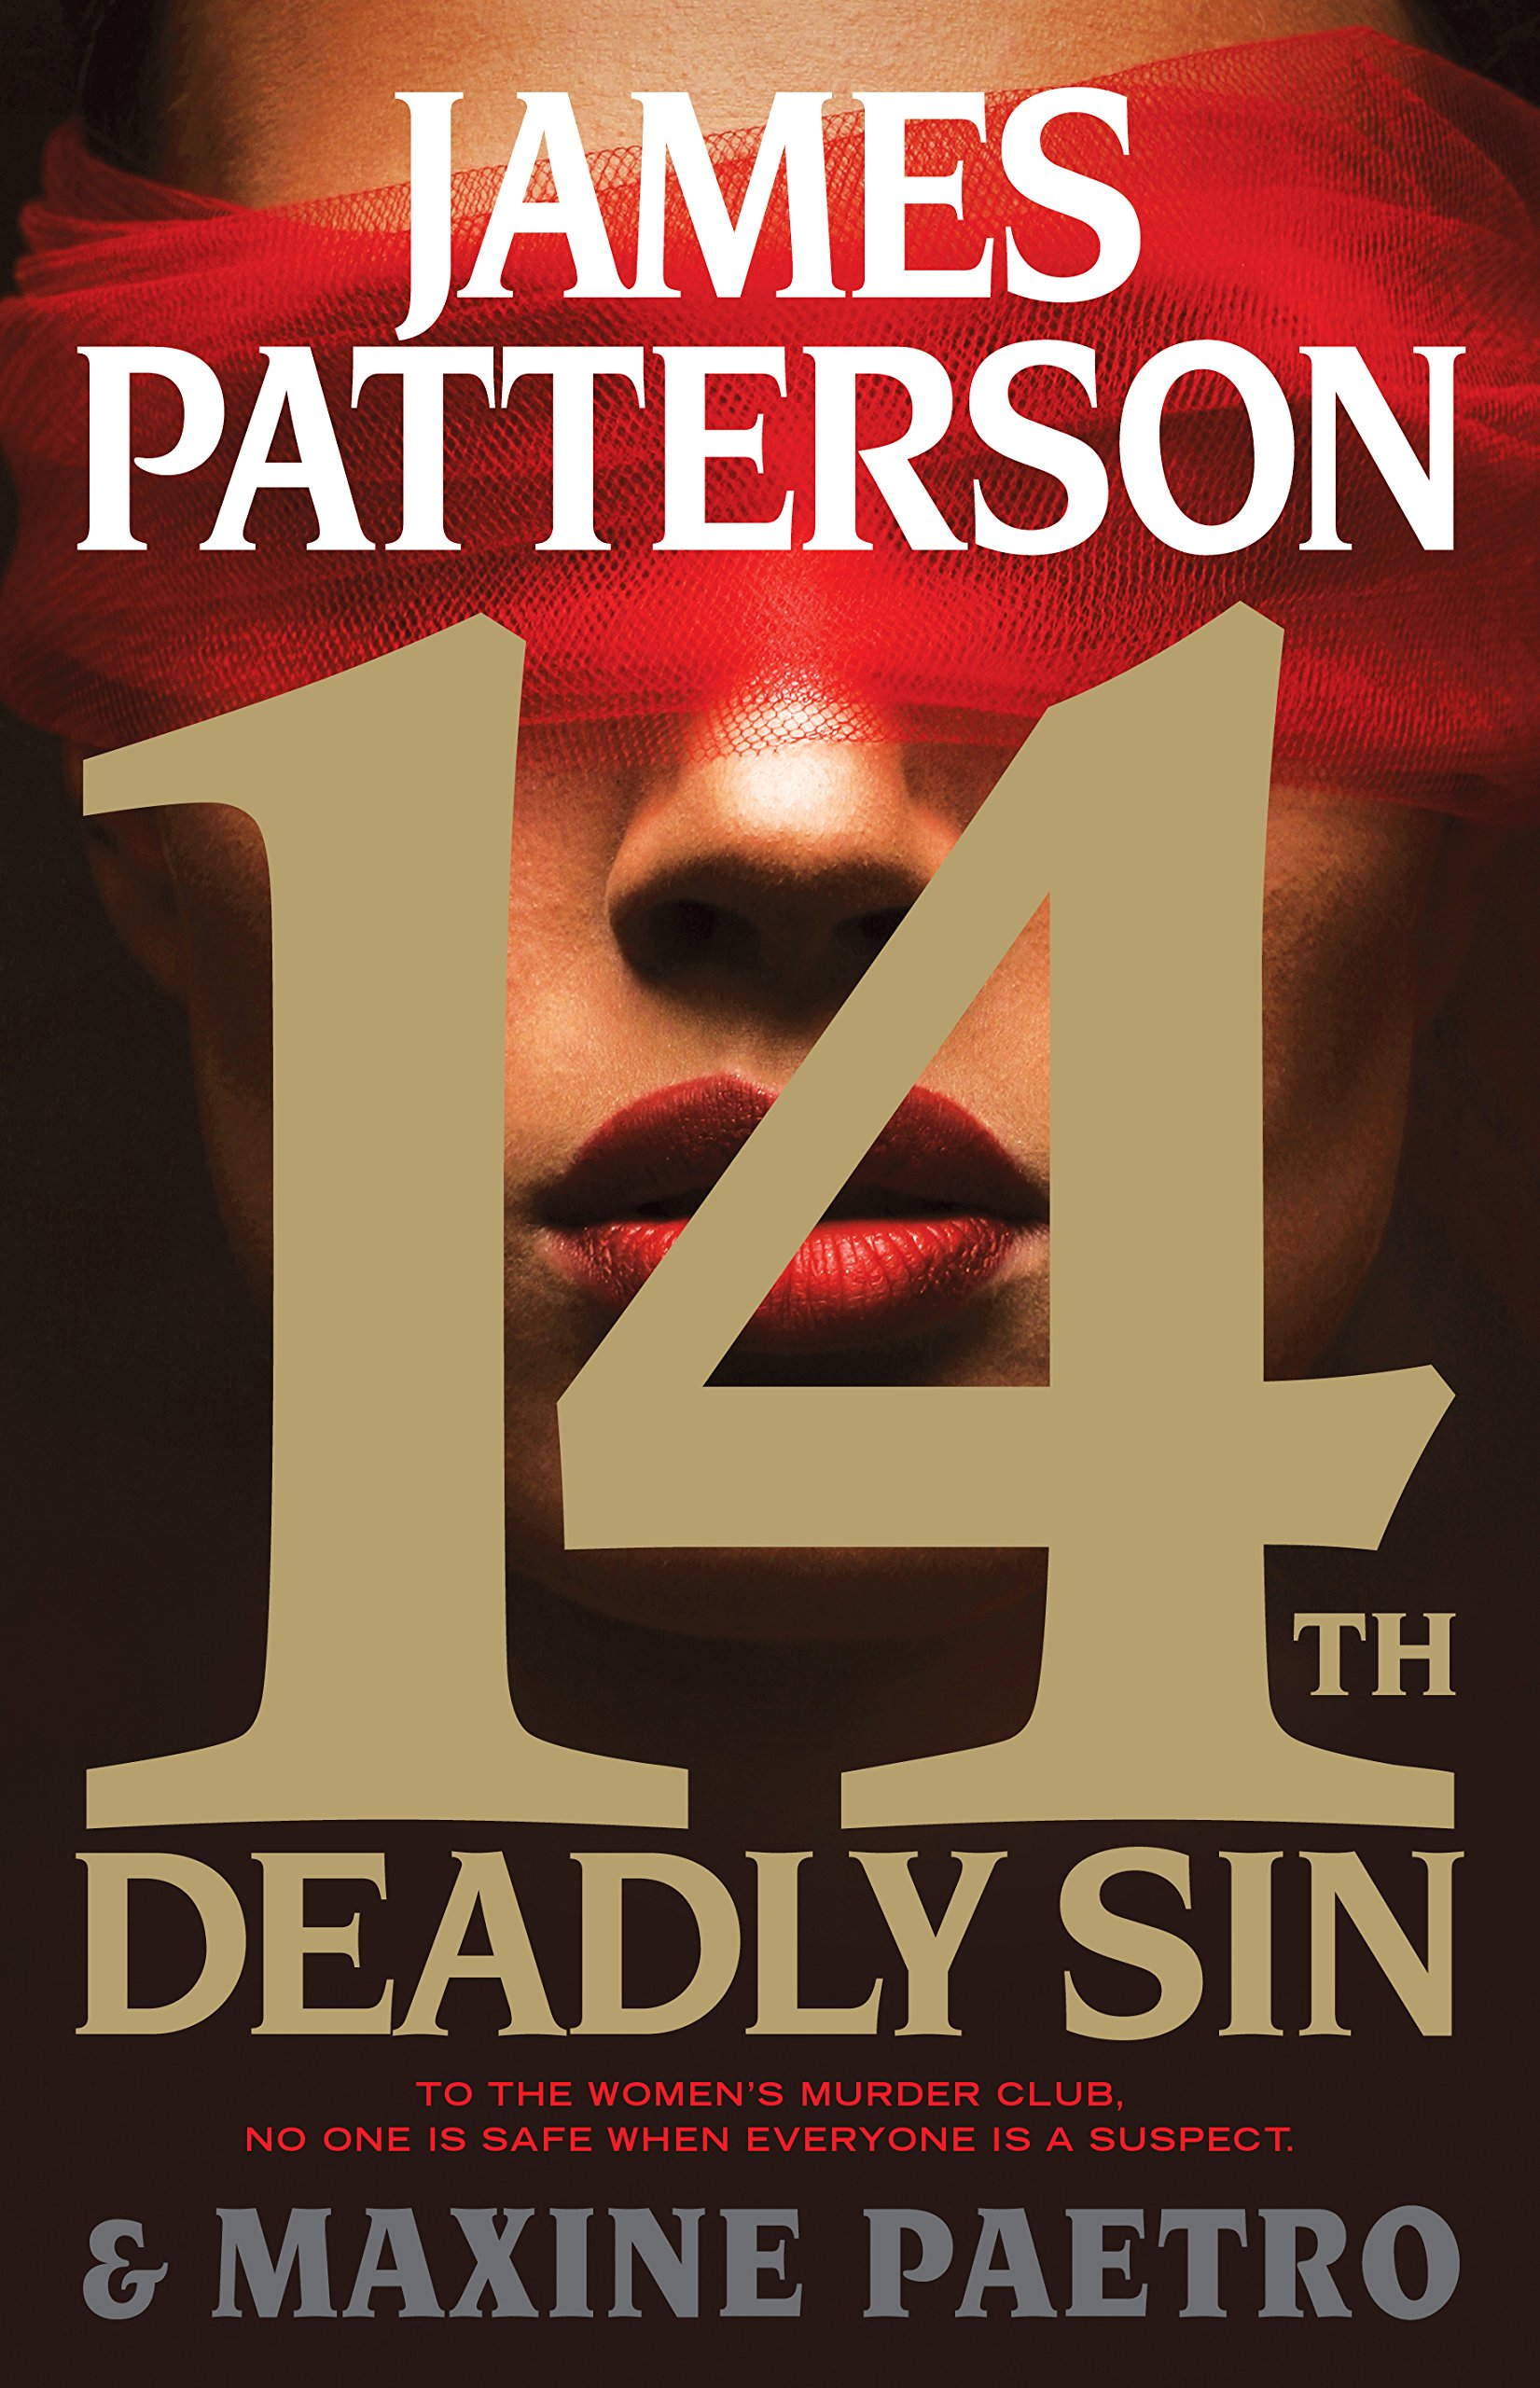 14th Deadly Sin (Women's Murder Club) ISBN-13 9780316407021